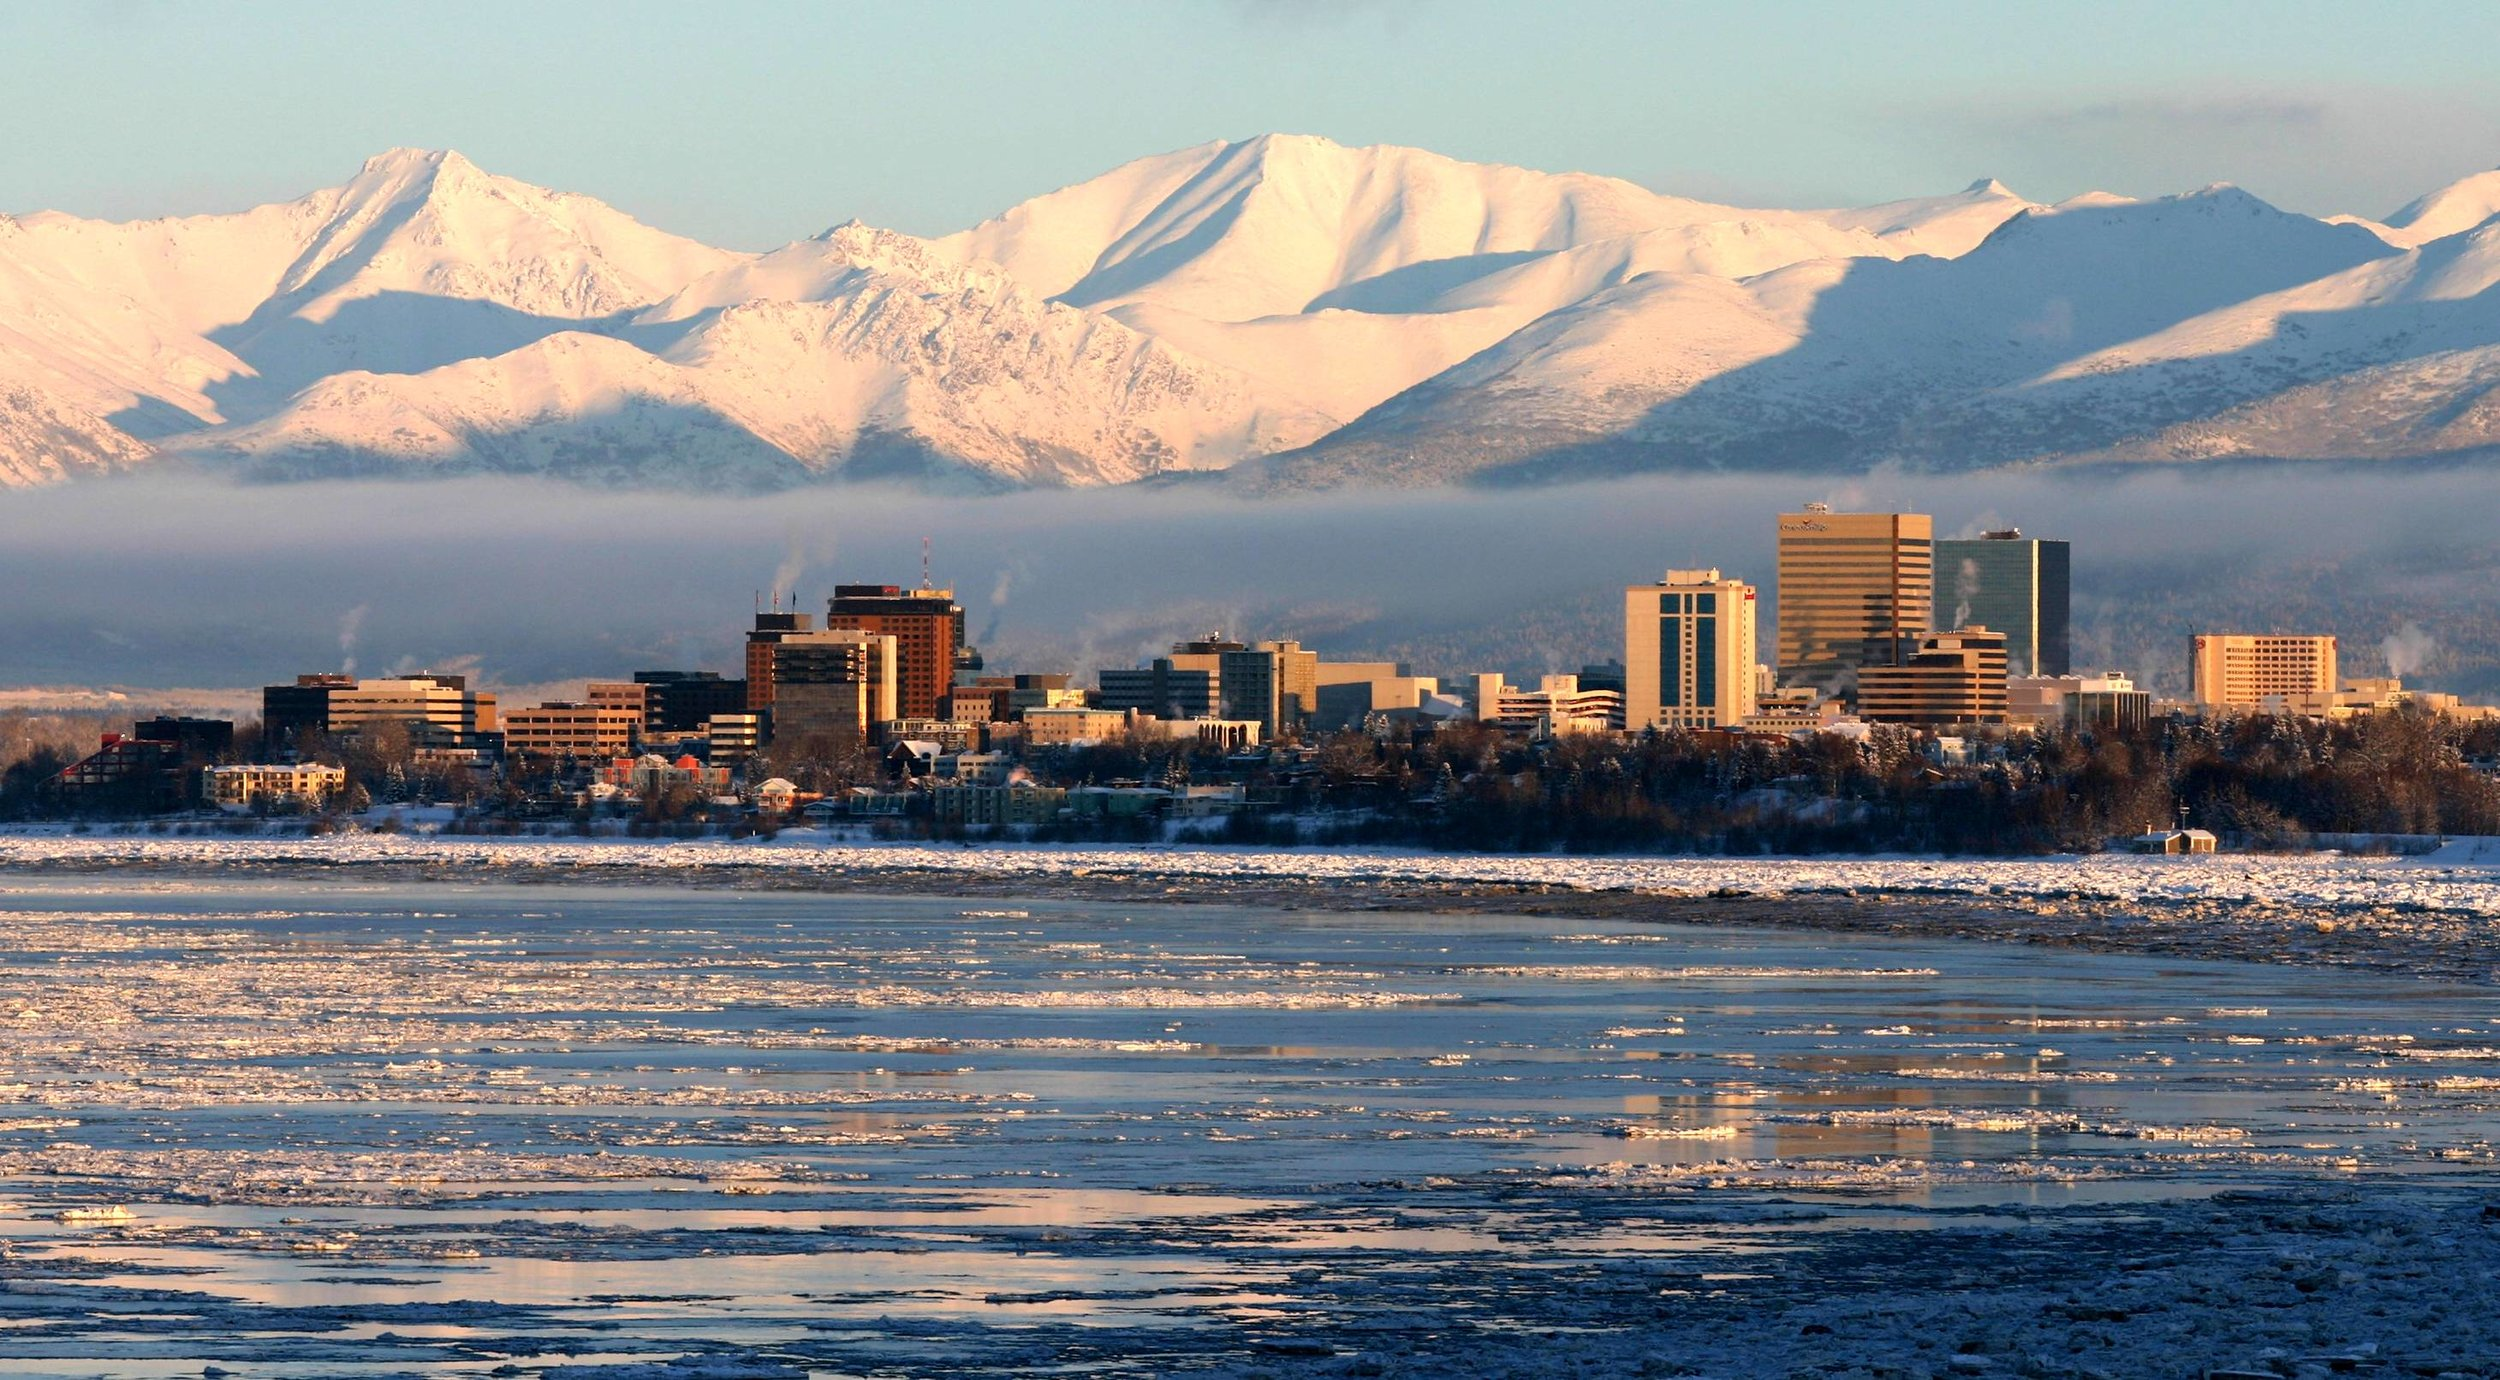 A view of the Anchorage skyline from Earthquake Park.